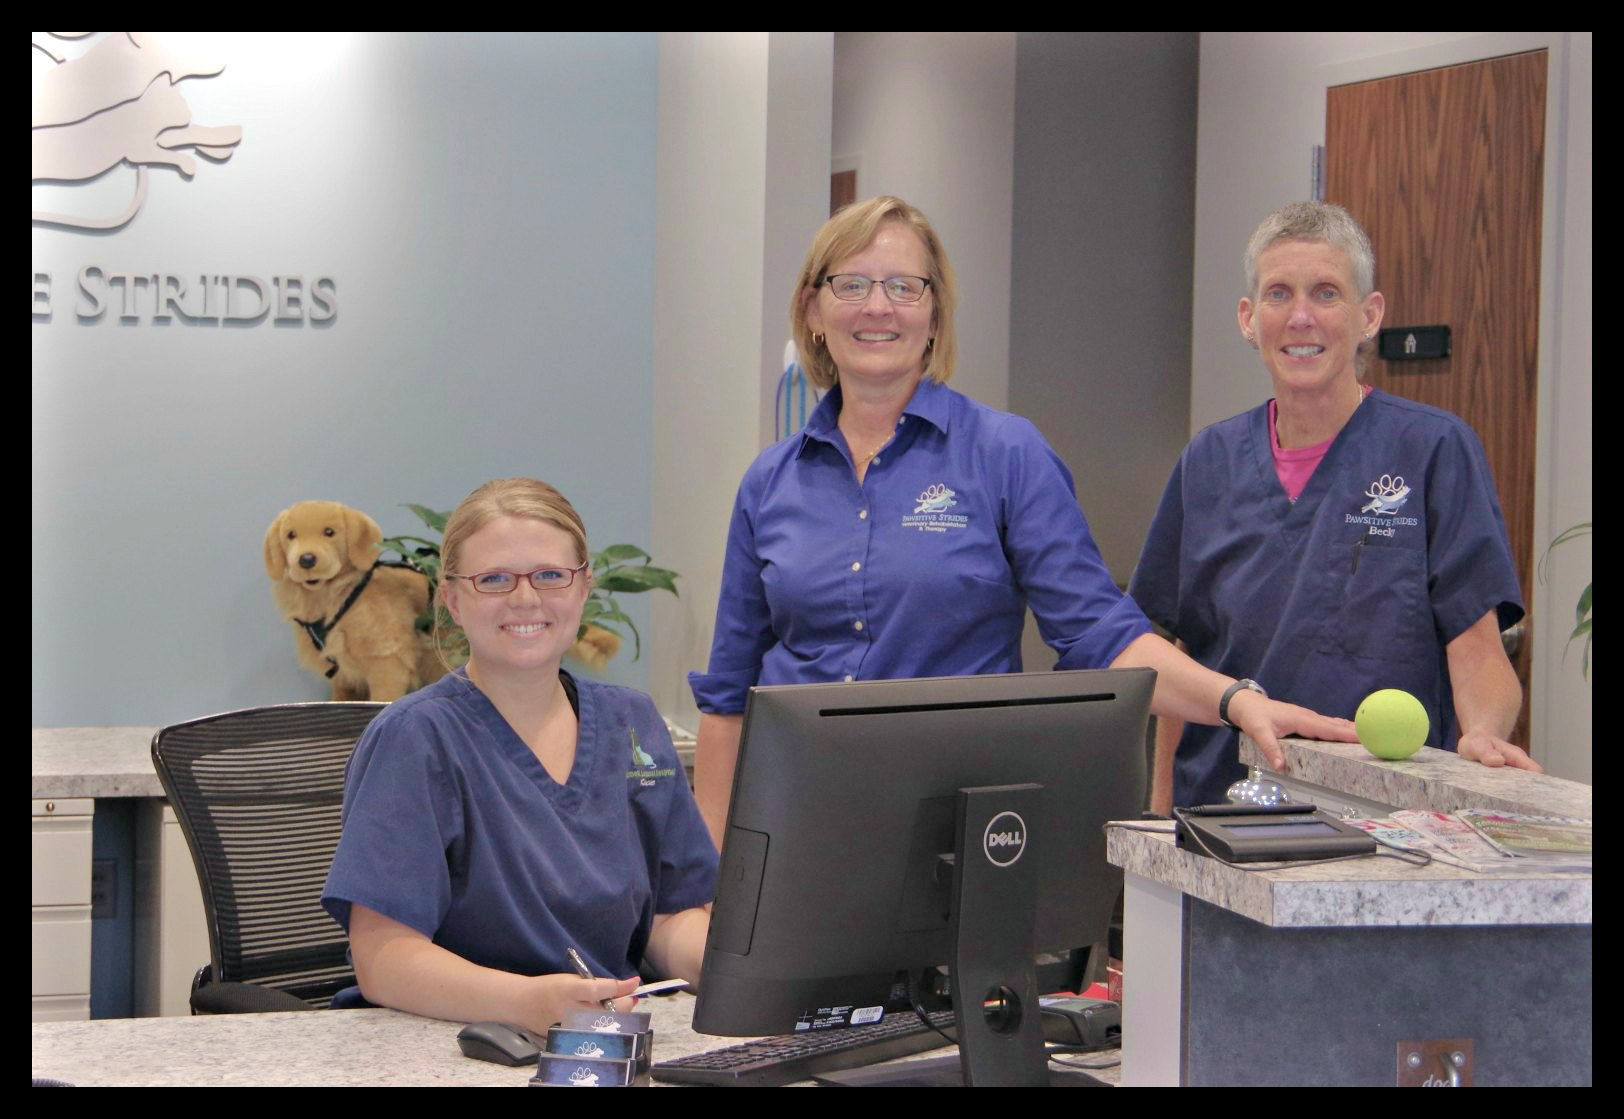 Pawsitive Strides Welcomes You!